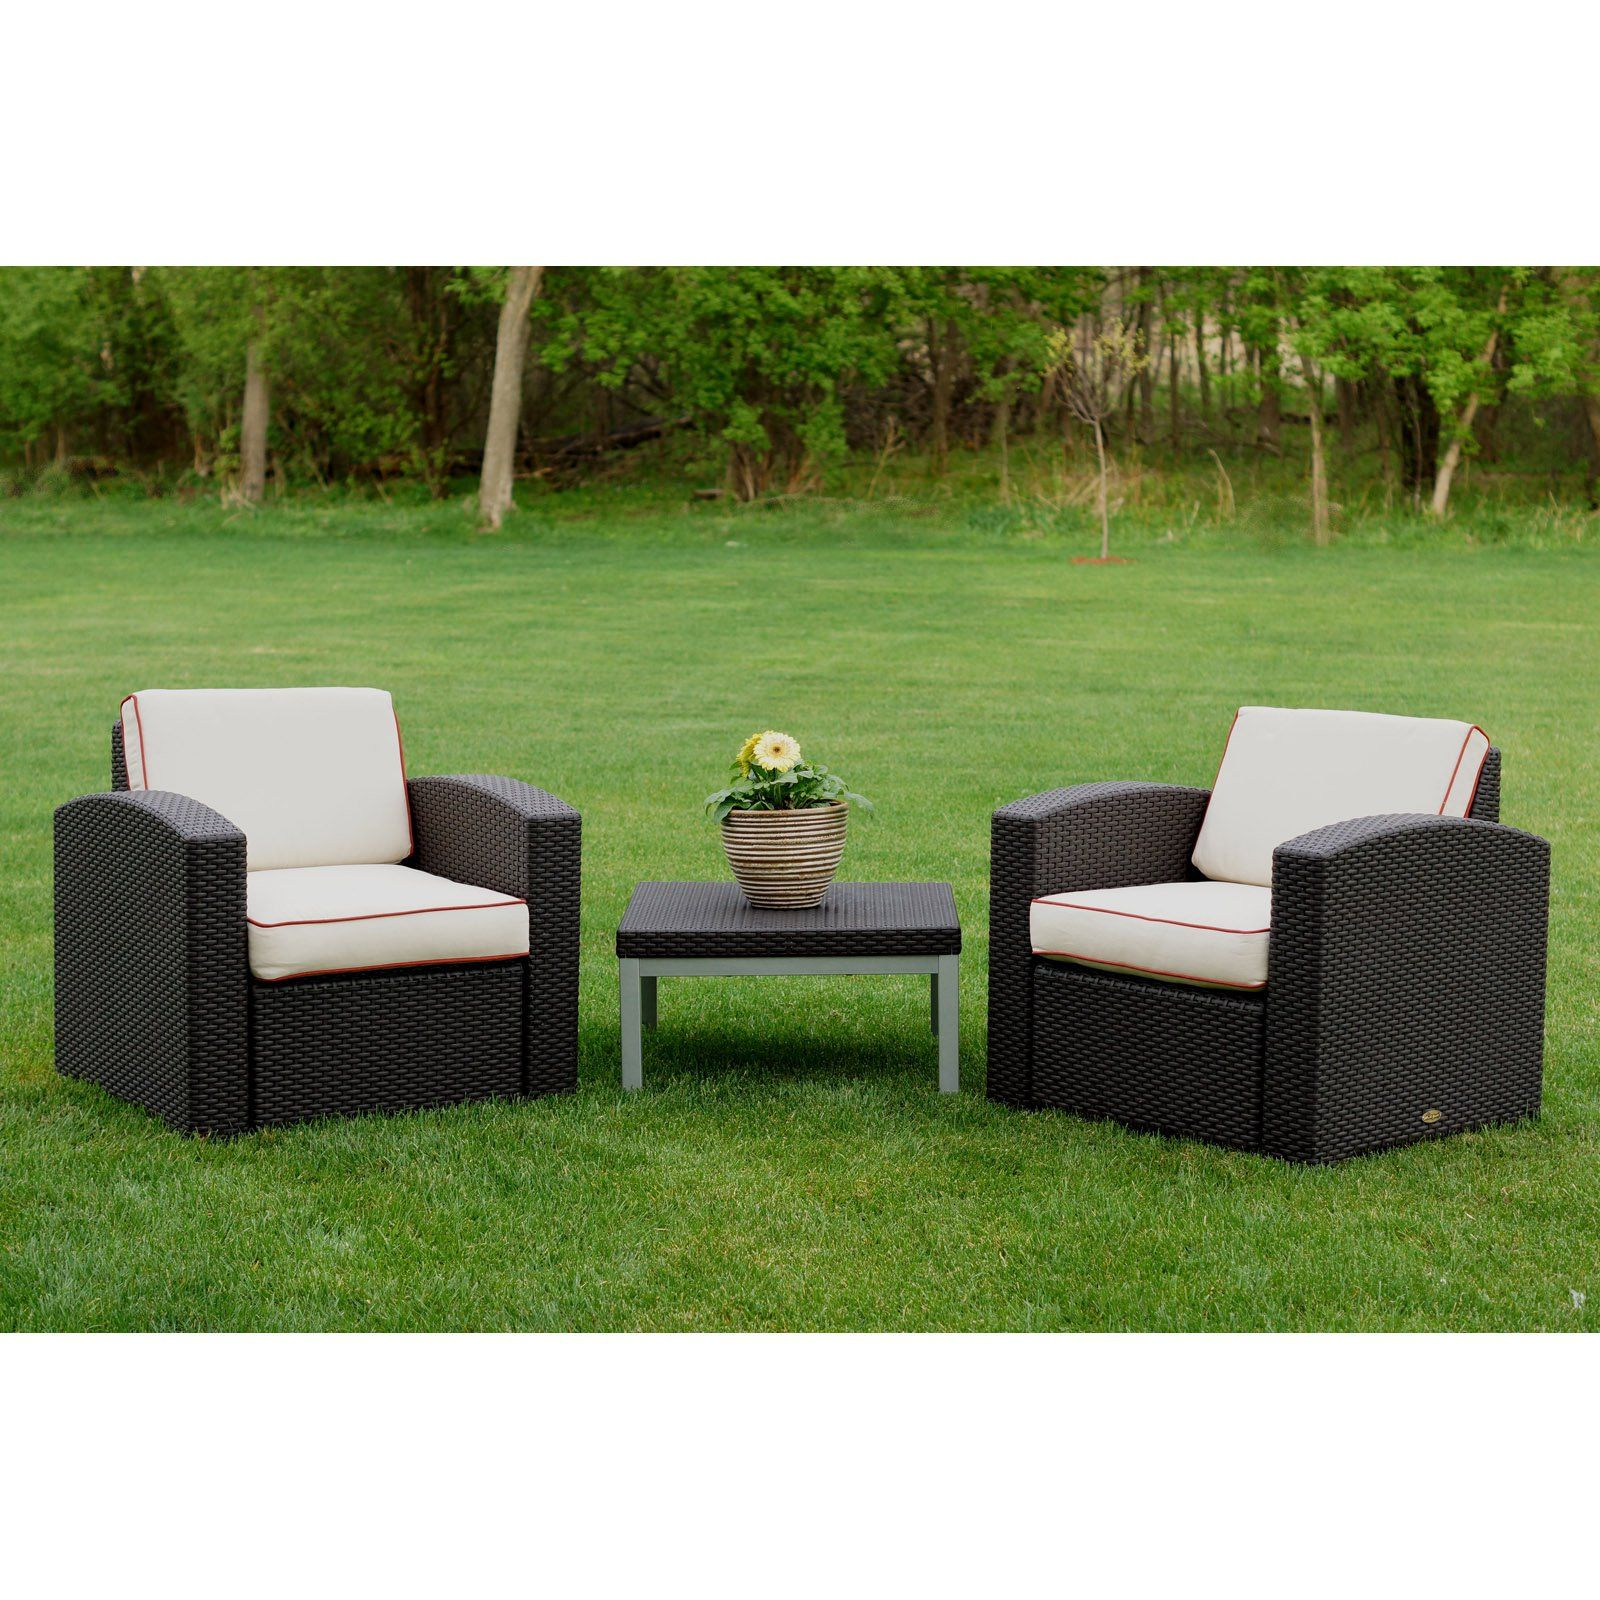 Outdoor Strata Furniture Cielo 3 Piece Chair And Coffee Table